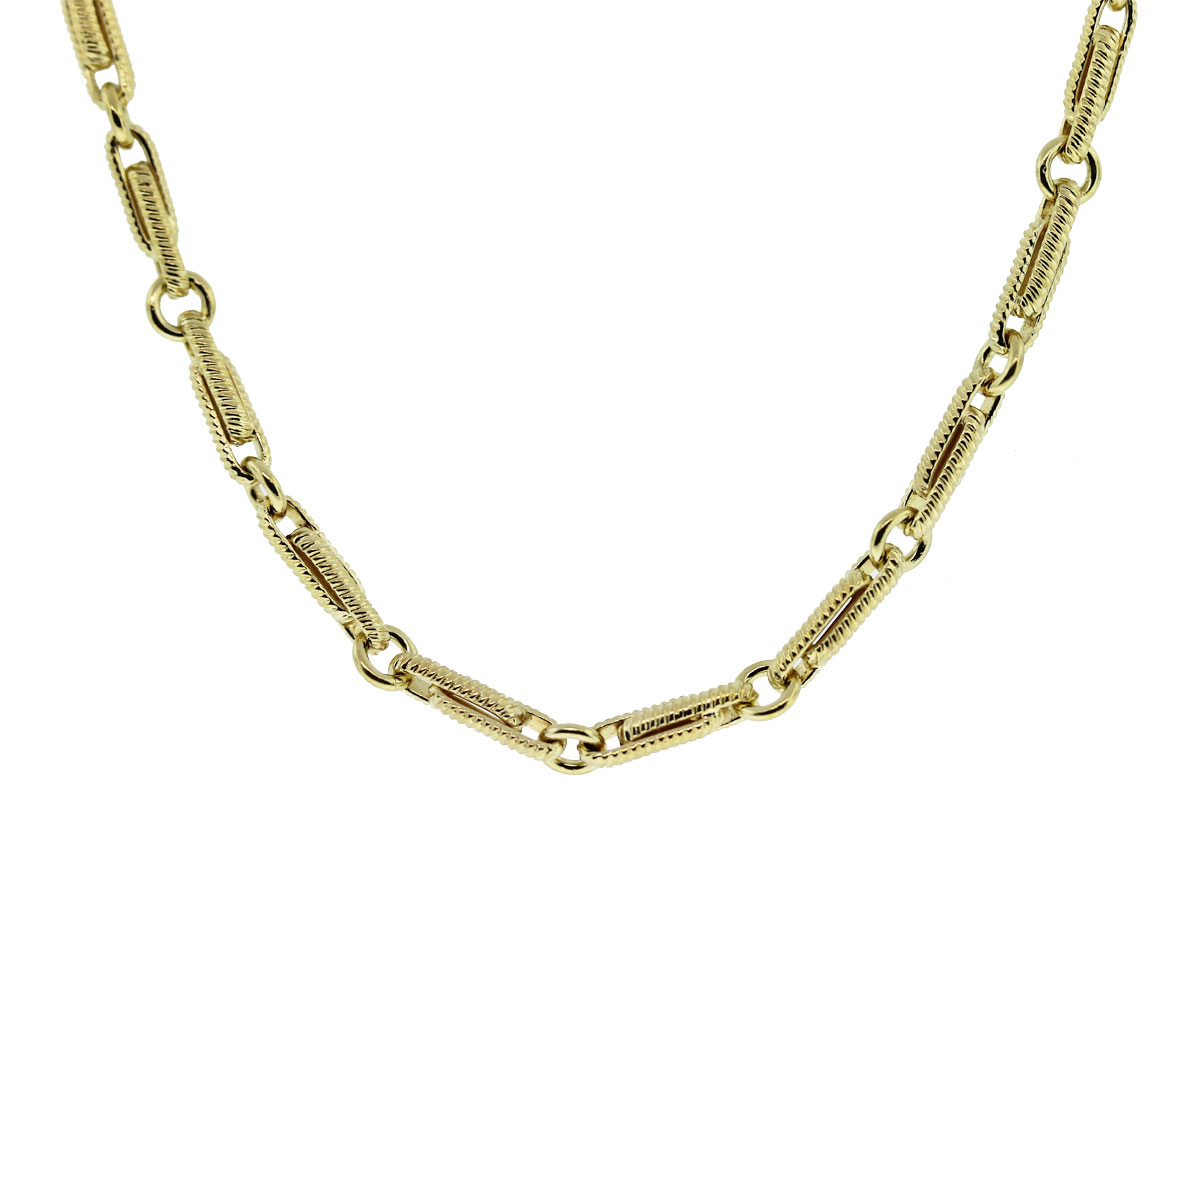 18kt Yellow Gold Fancy Link Chain Necklace